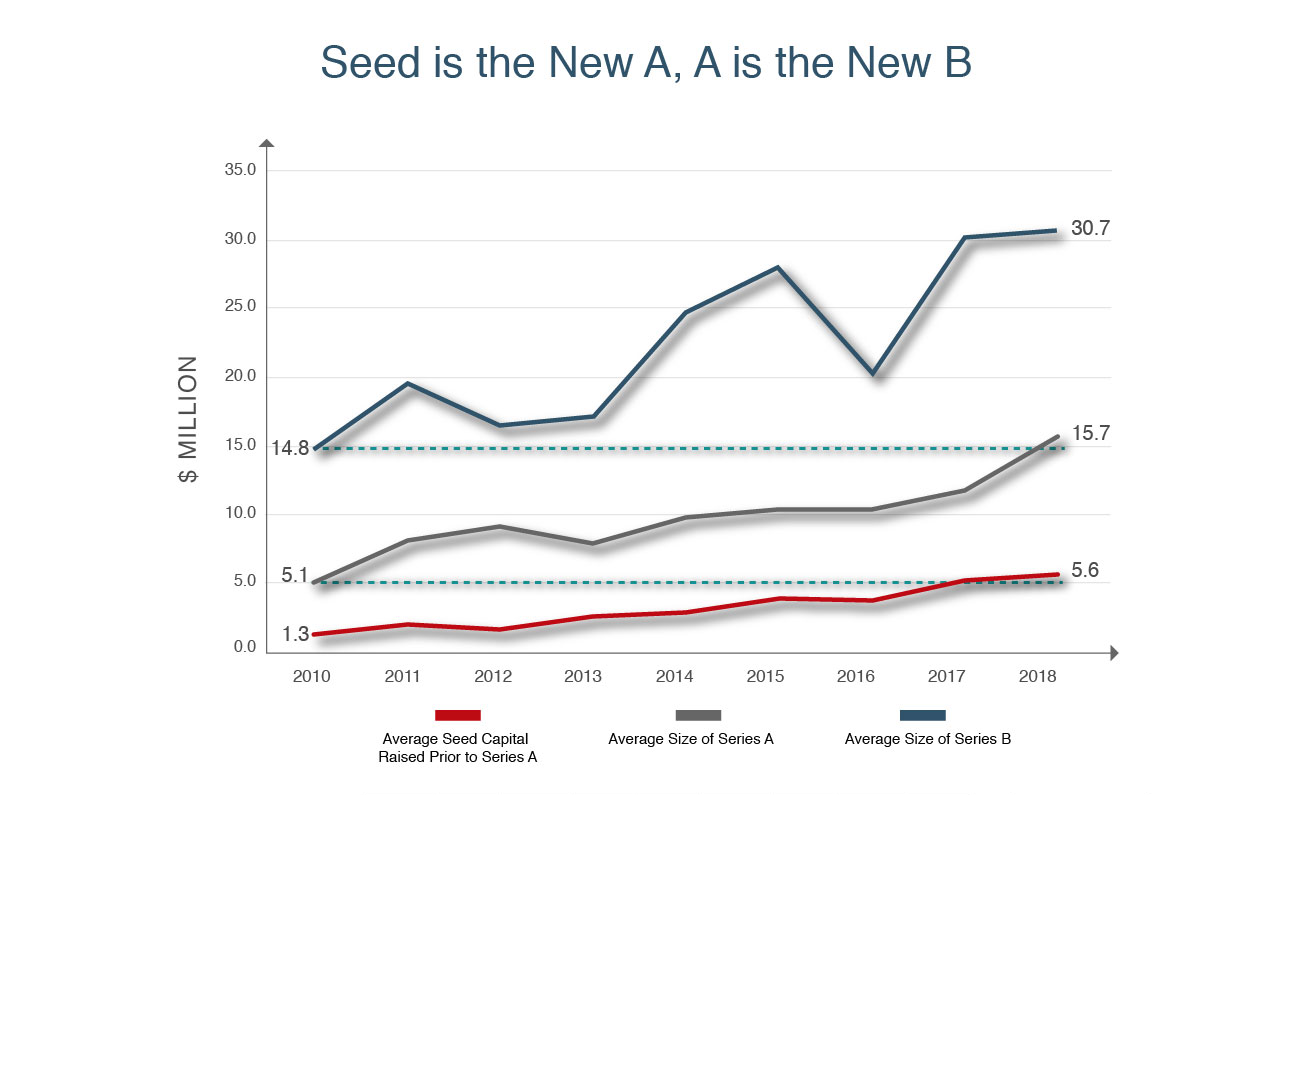 Seed is the New A, A is the New B (Graph from TechCrunch)